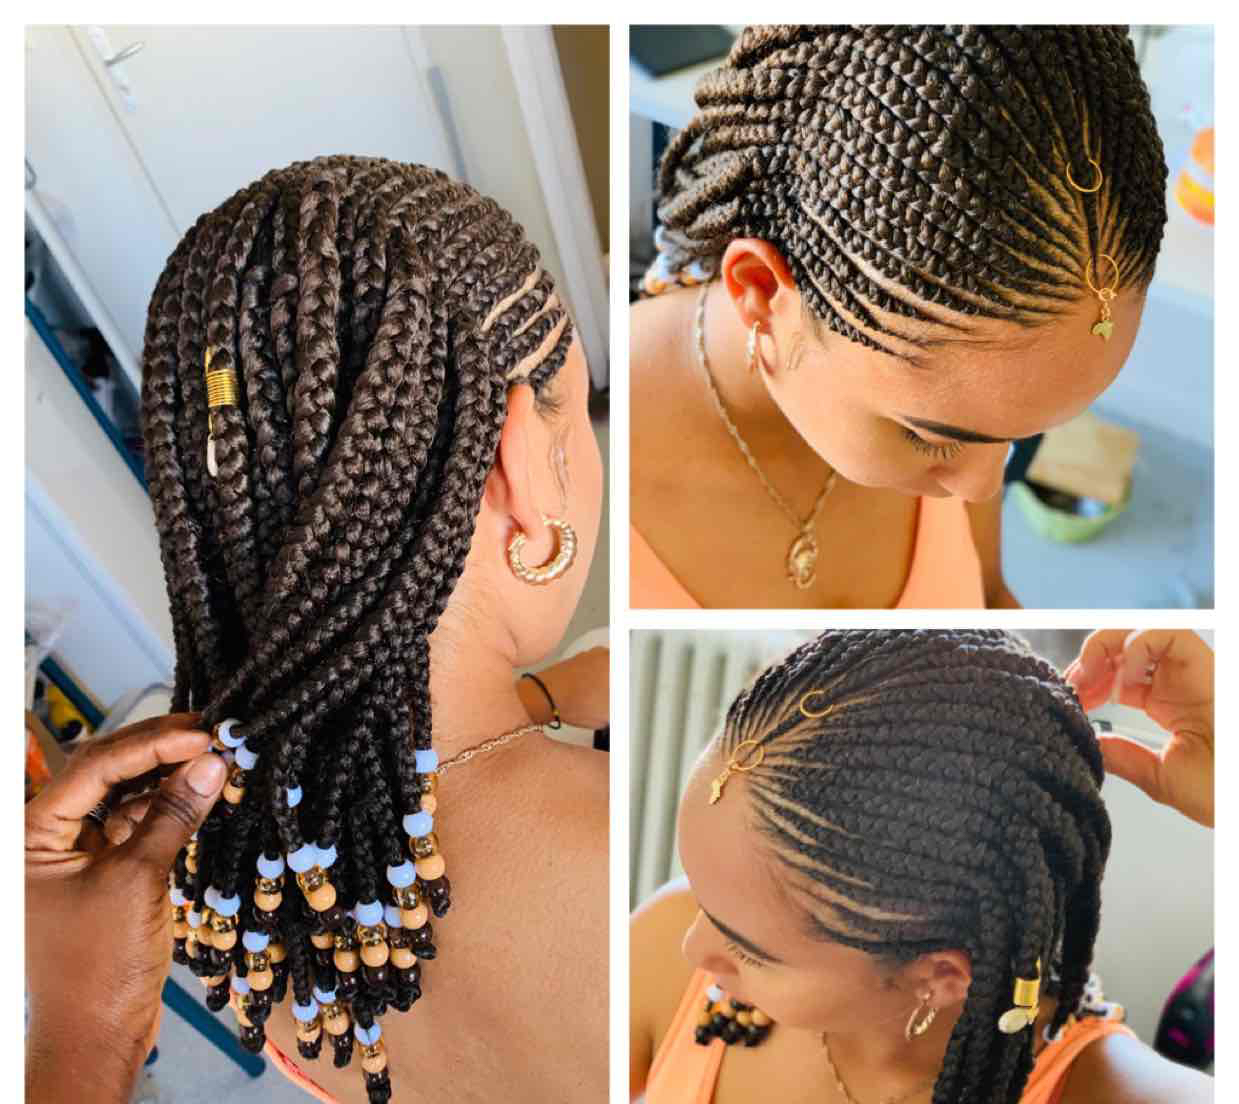 salon de coiffure afro tresse tresses box braids crochet braids vanilles tissages paris 75 77 78 91 92 93 94 95 LKPFMYYH